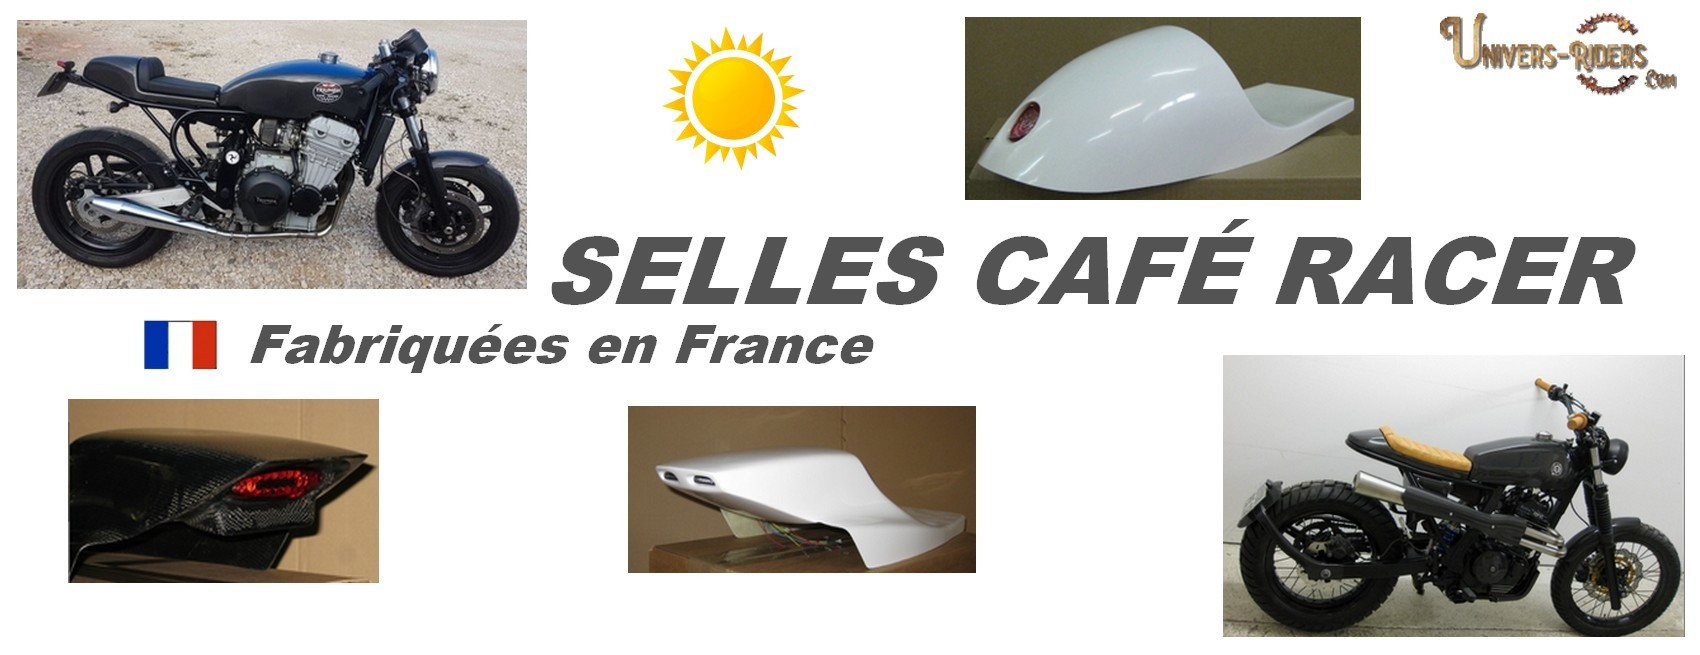 Selles motos poly cafe racer vintage univers riders